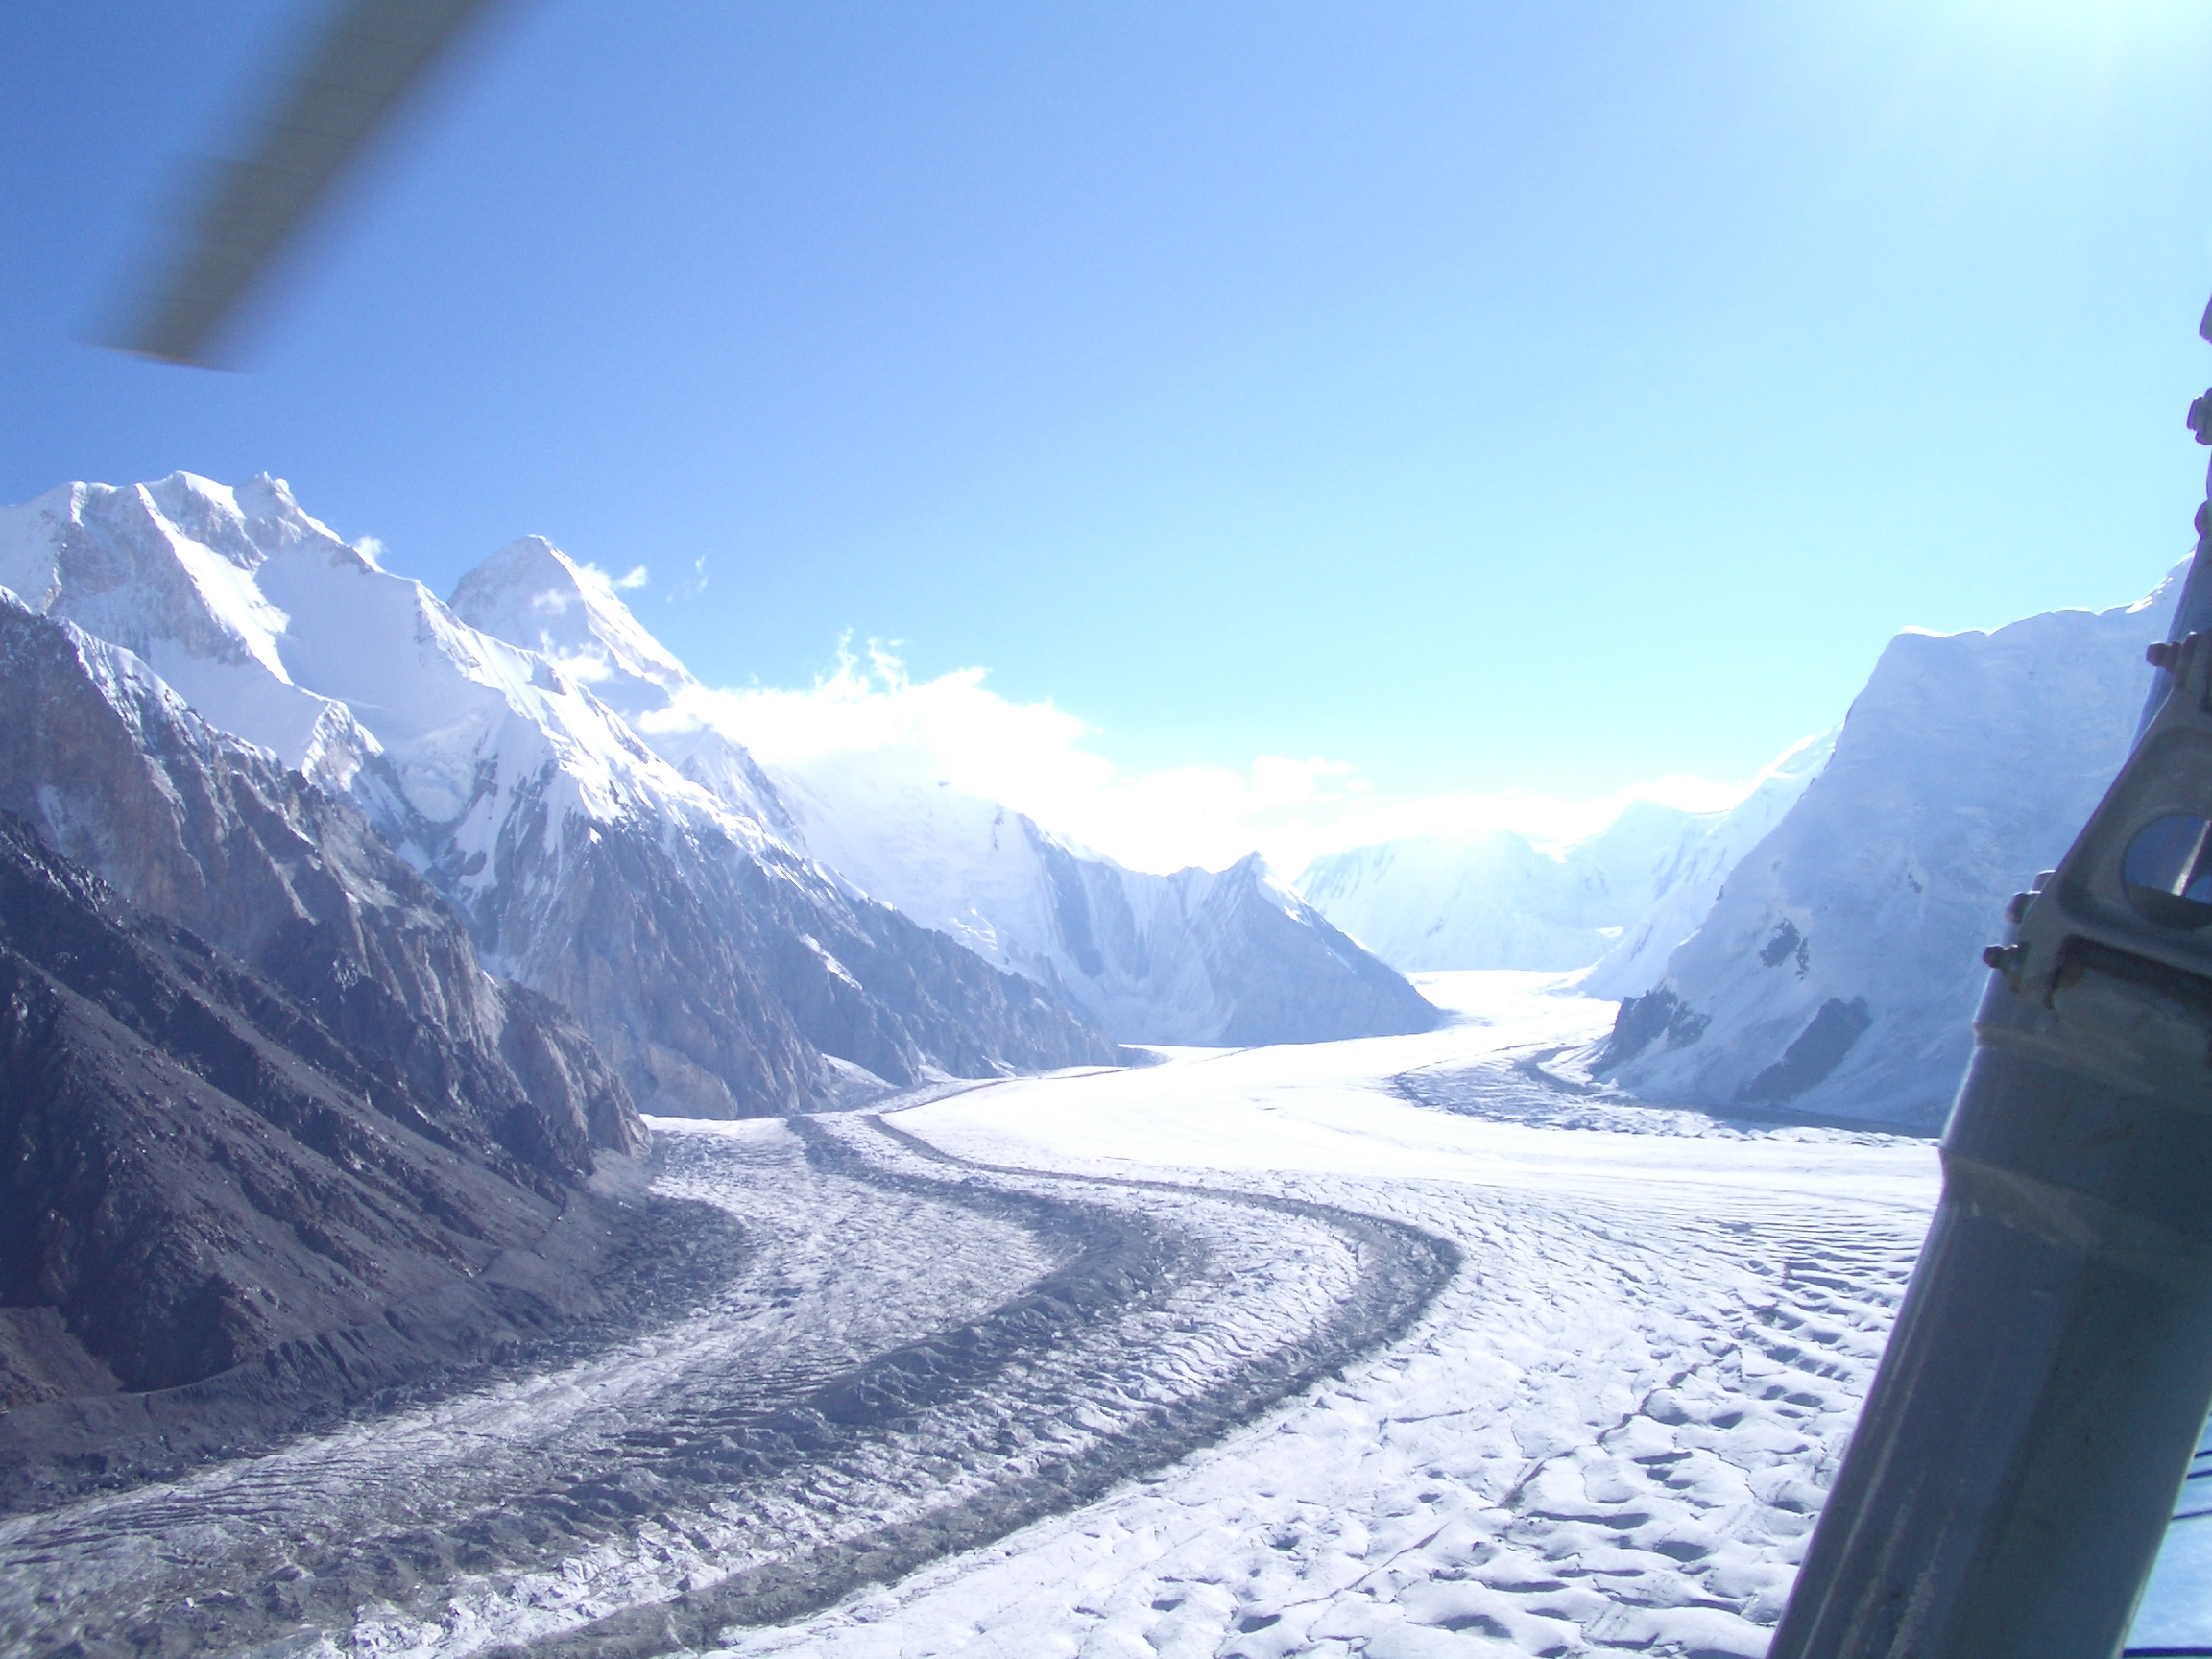 Flying by helicopter into basecamp, Khan Tengri